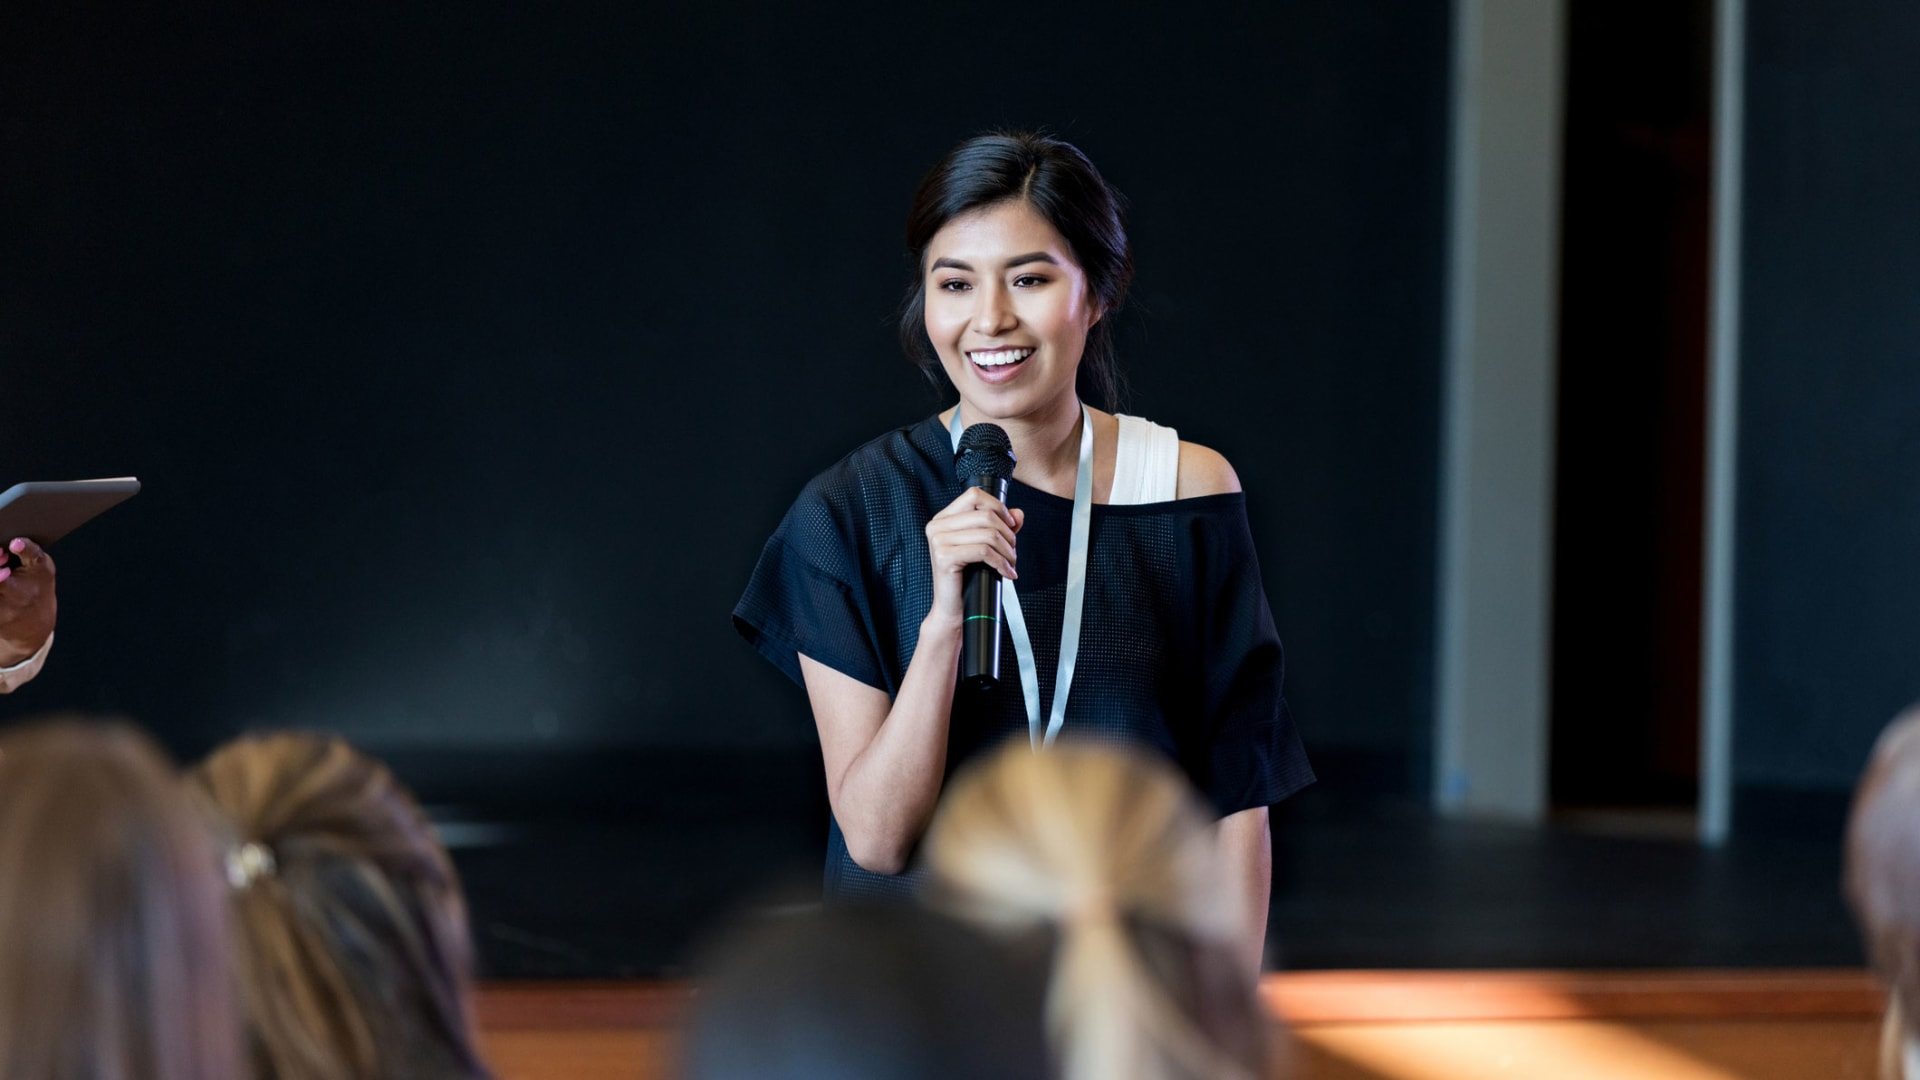 4 Public Speaking Tips Every Leader Needs to Hear